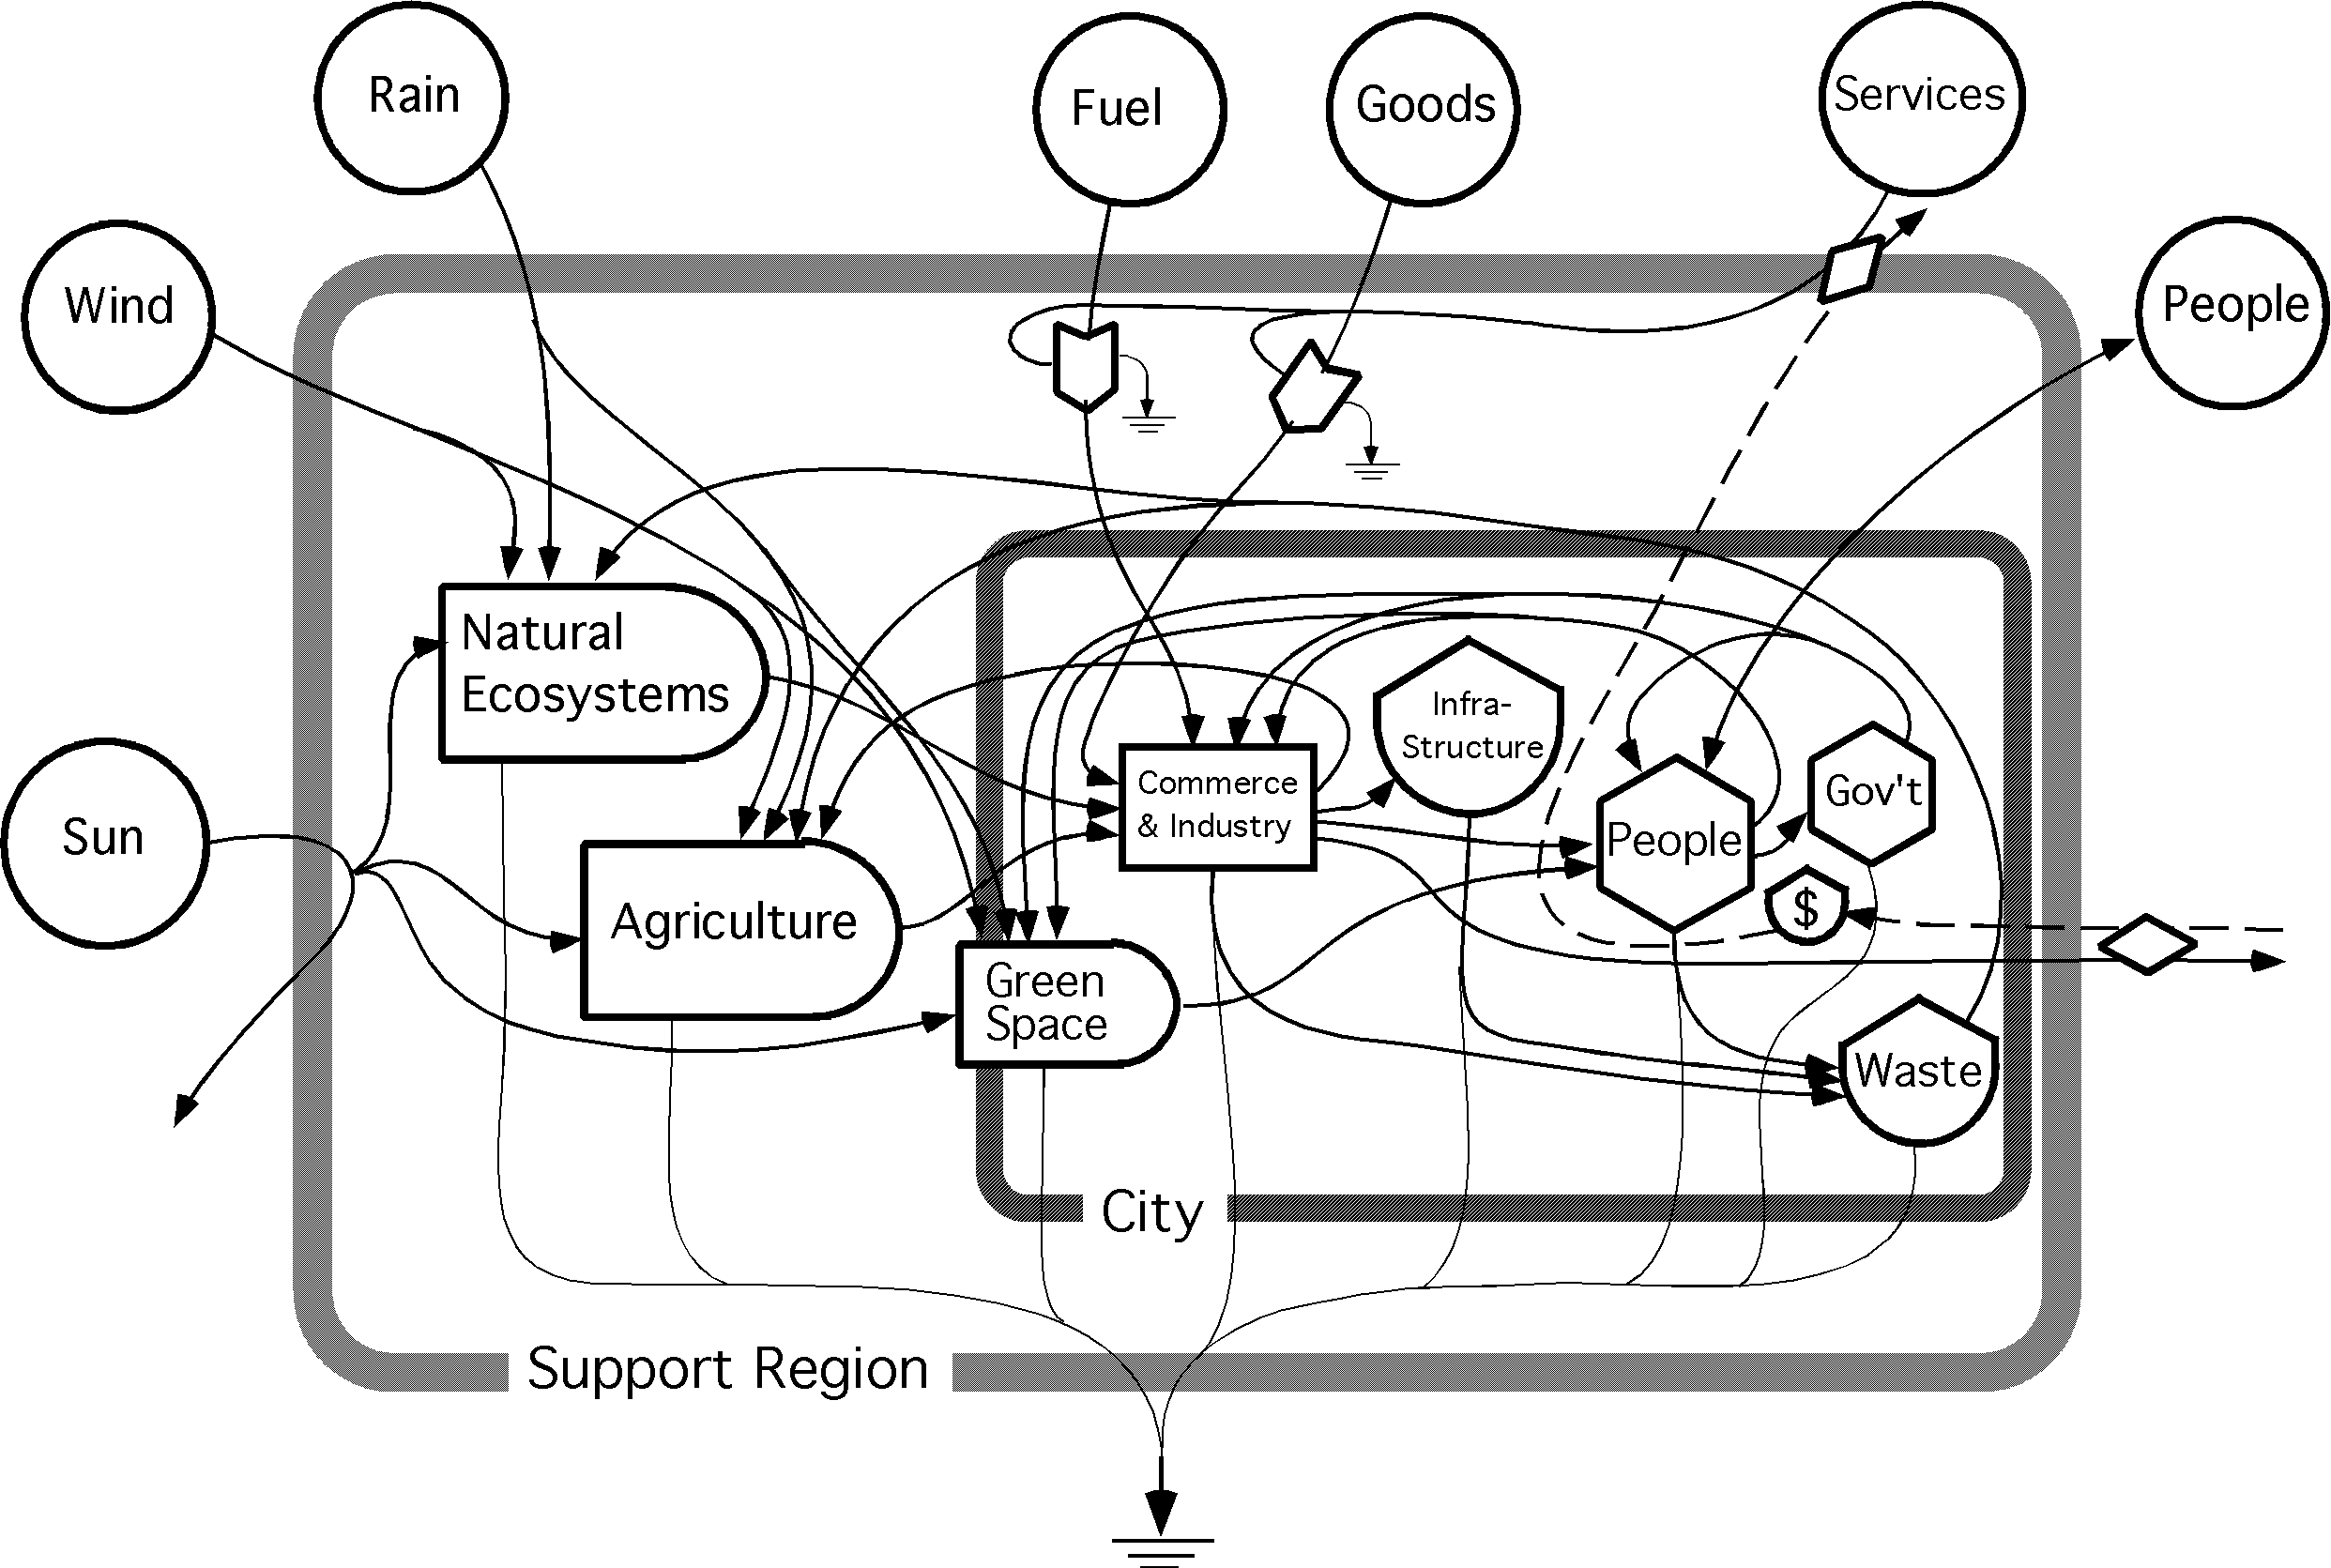 File Systems Diagram Of A City